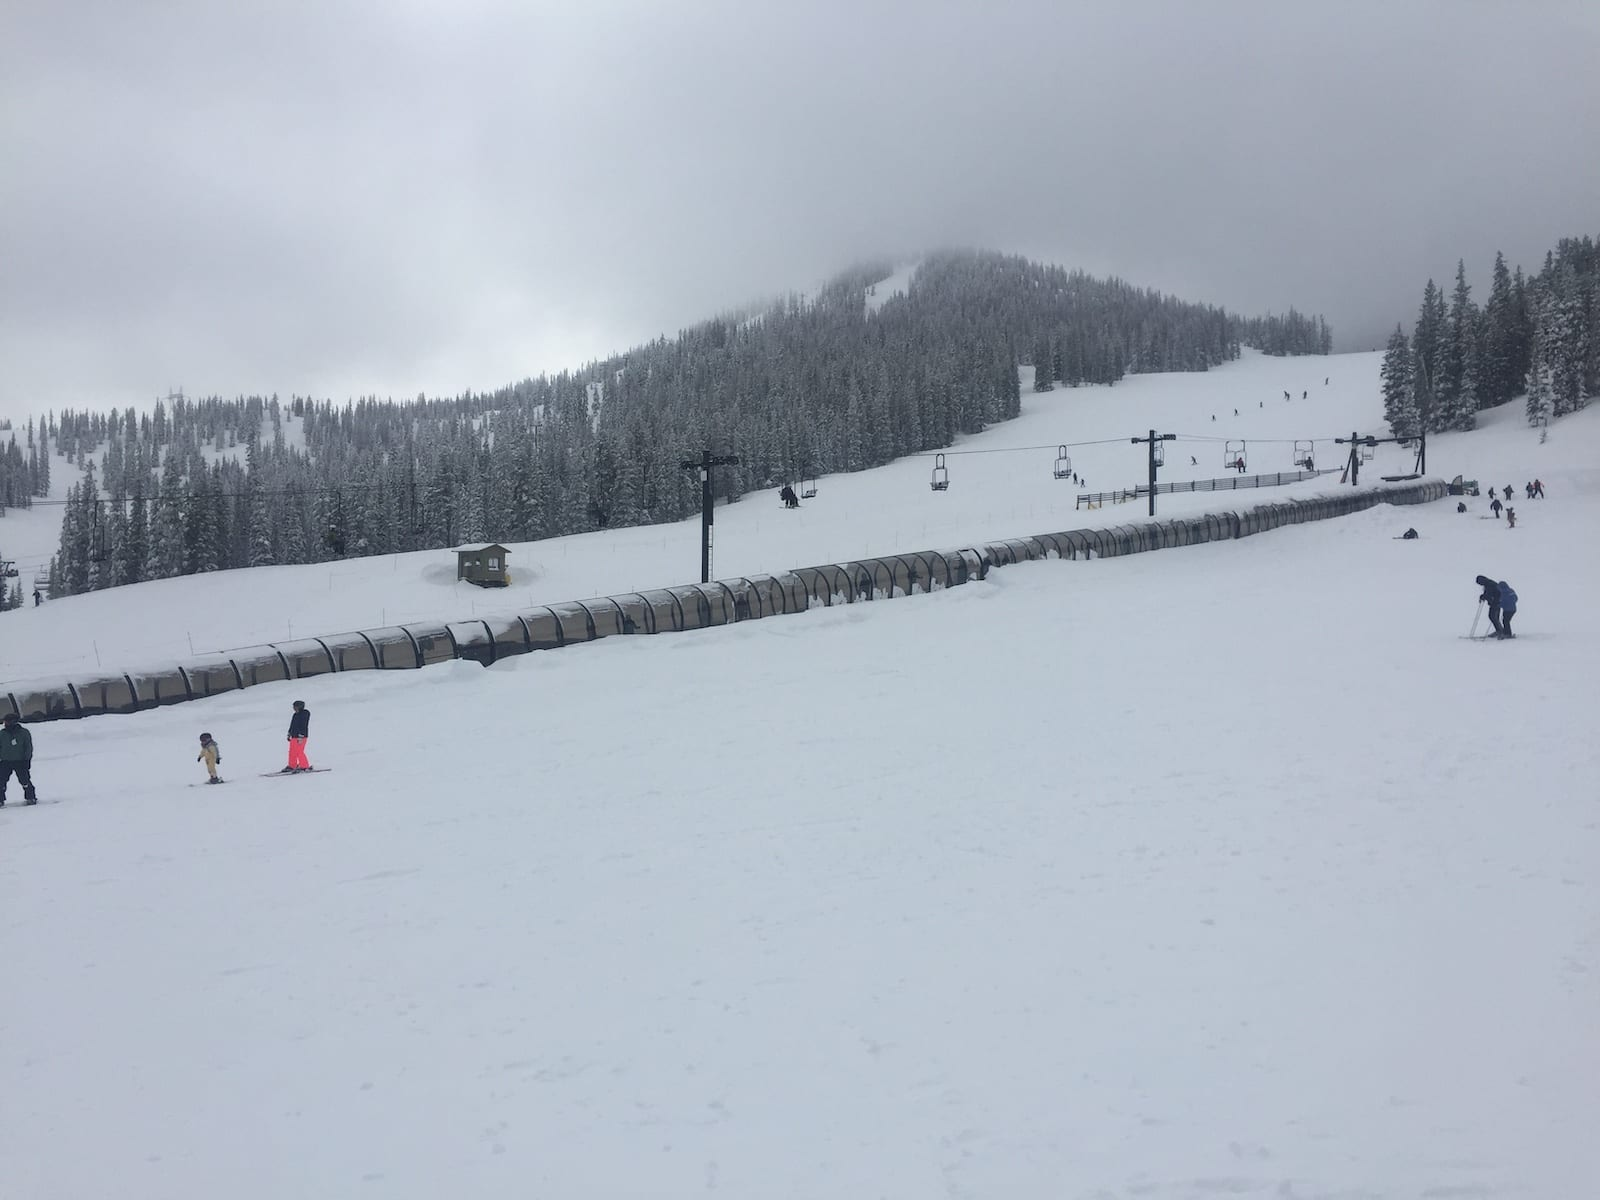 Best Family Ski Resorts Colorado Monarch Mountain Covered Magic Carpet Lift